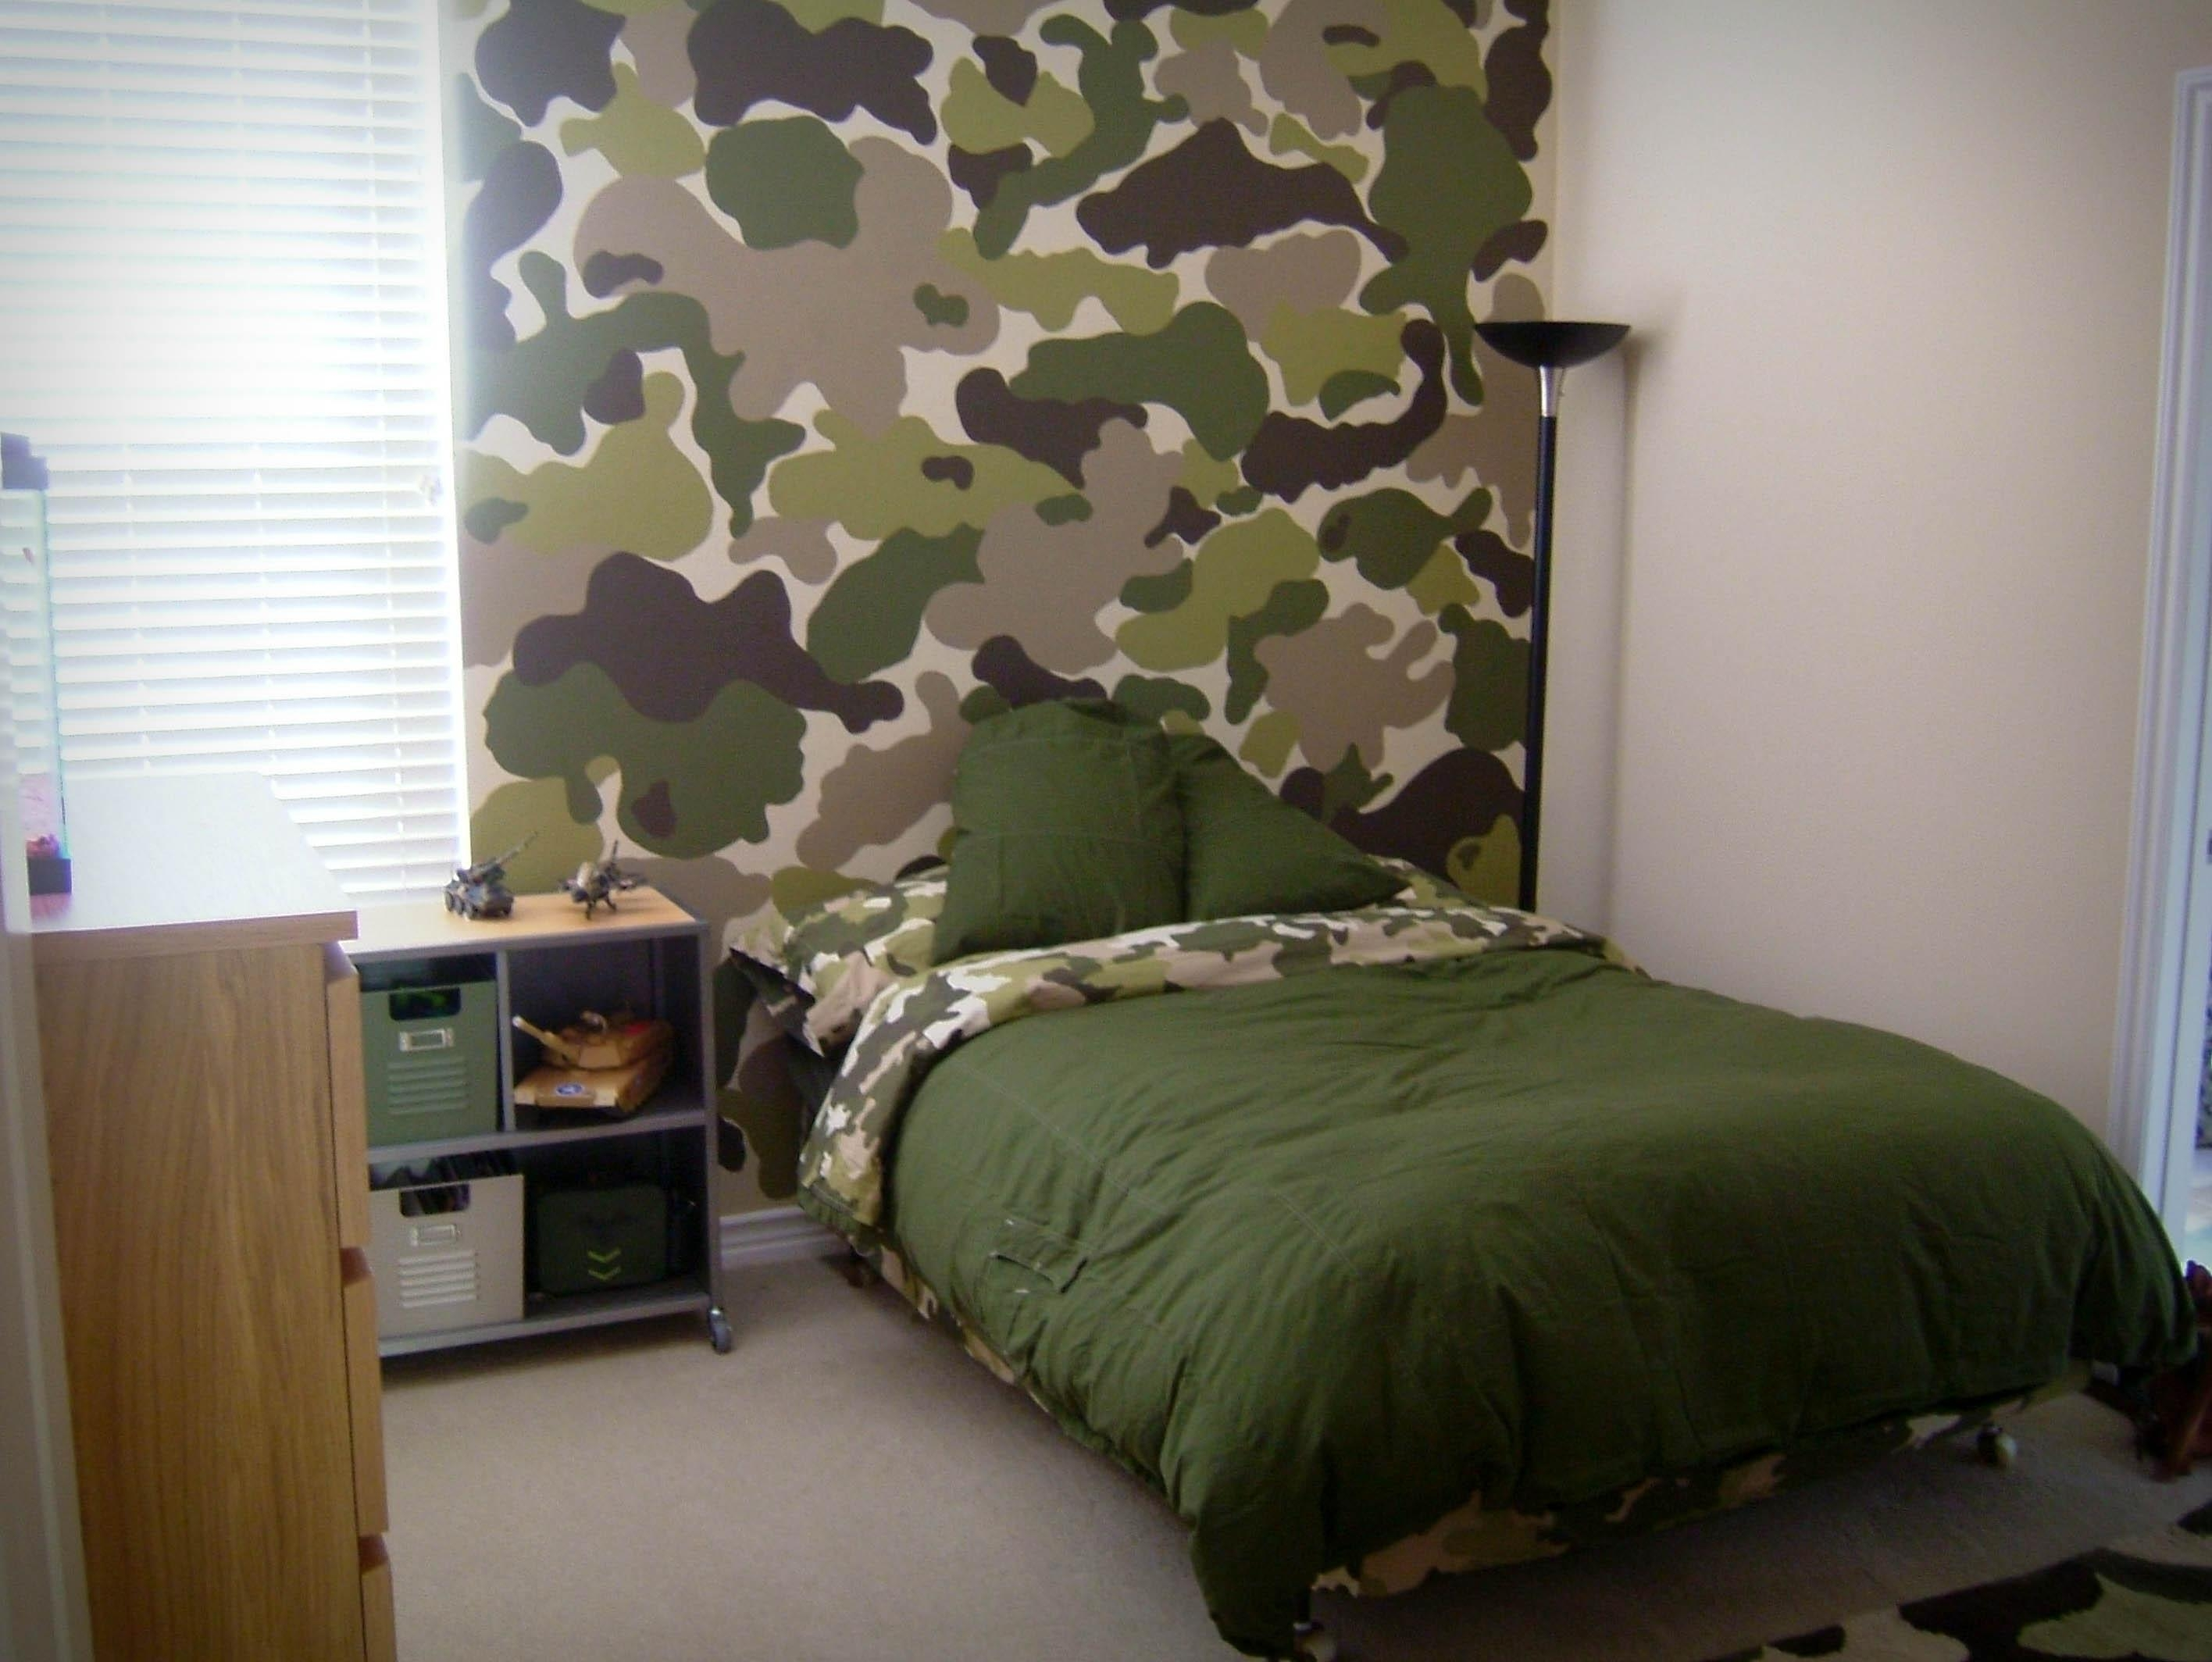 Room Swap Part 1 – The Modchik Pertaining To Camouflage Wall Art (View 3 of 20)